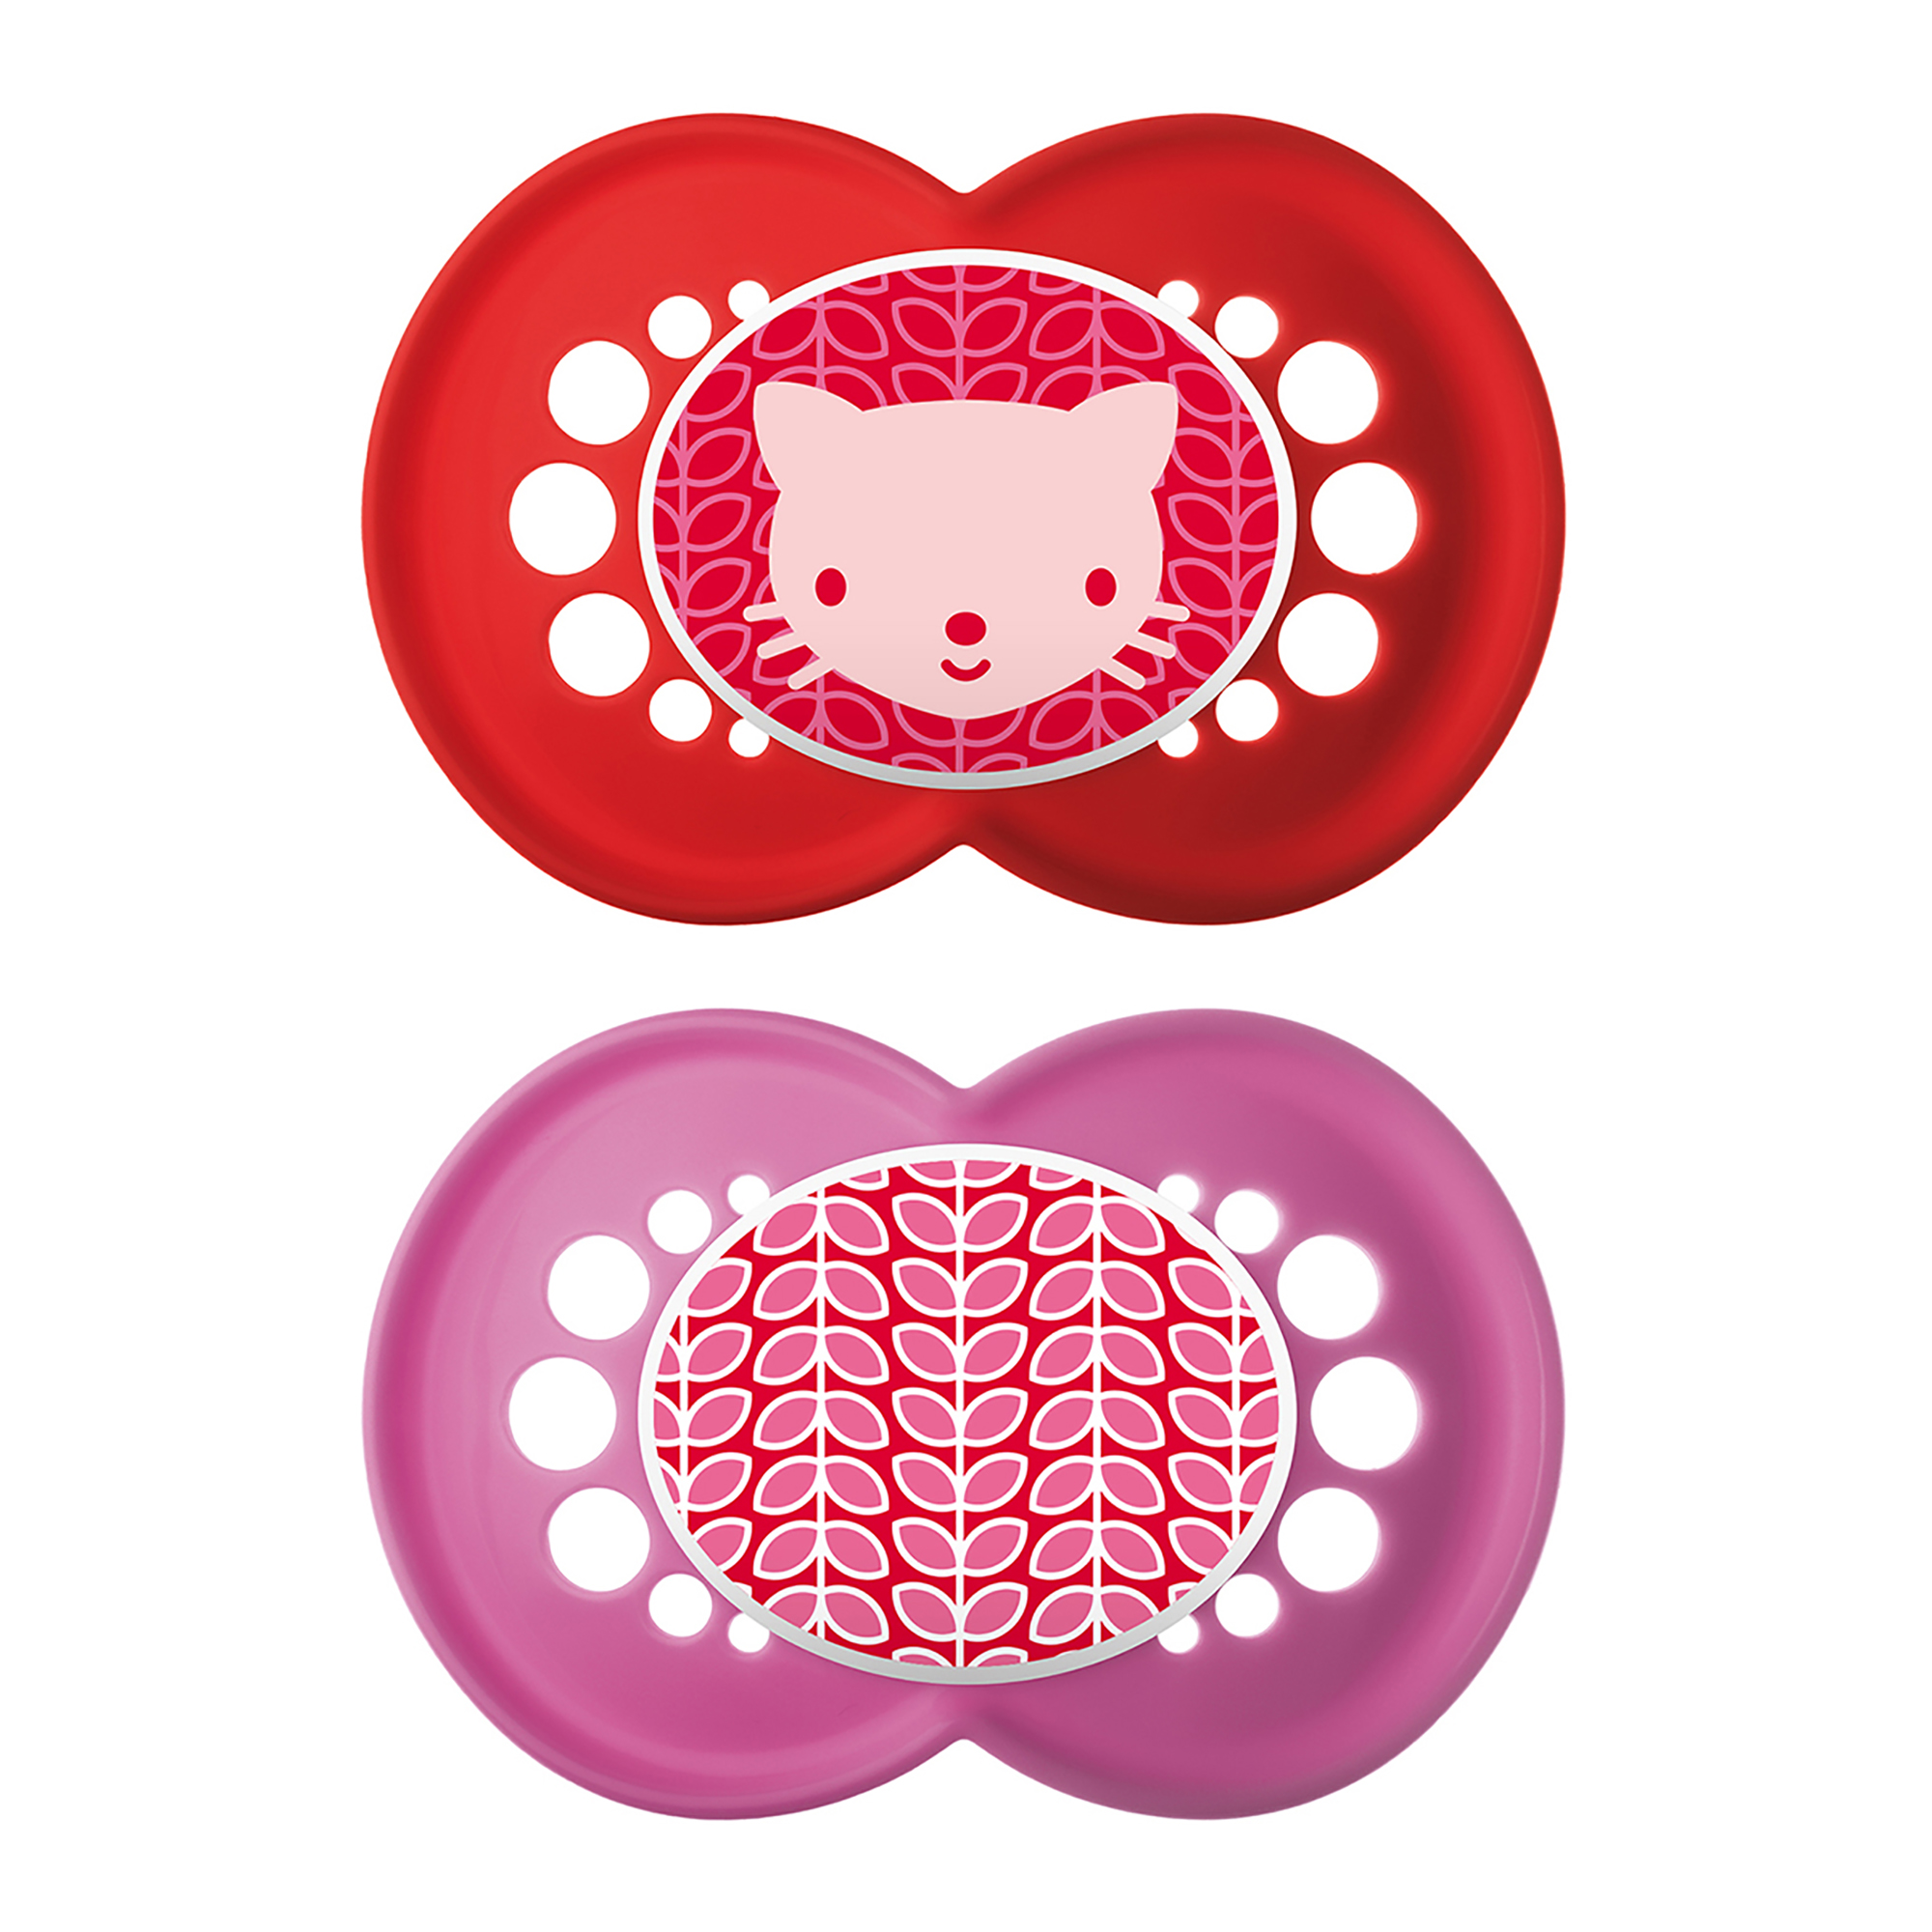 MAM Trends Orthodontic Pacifier, 6+ Months, 2-Count, Girl